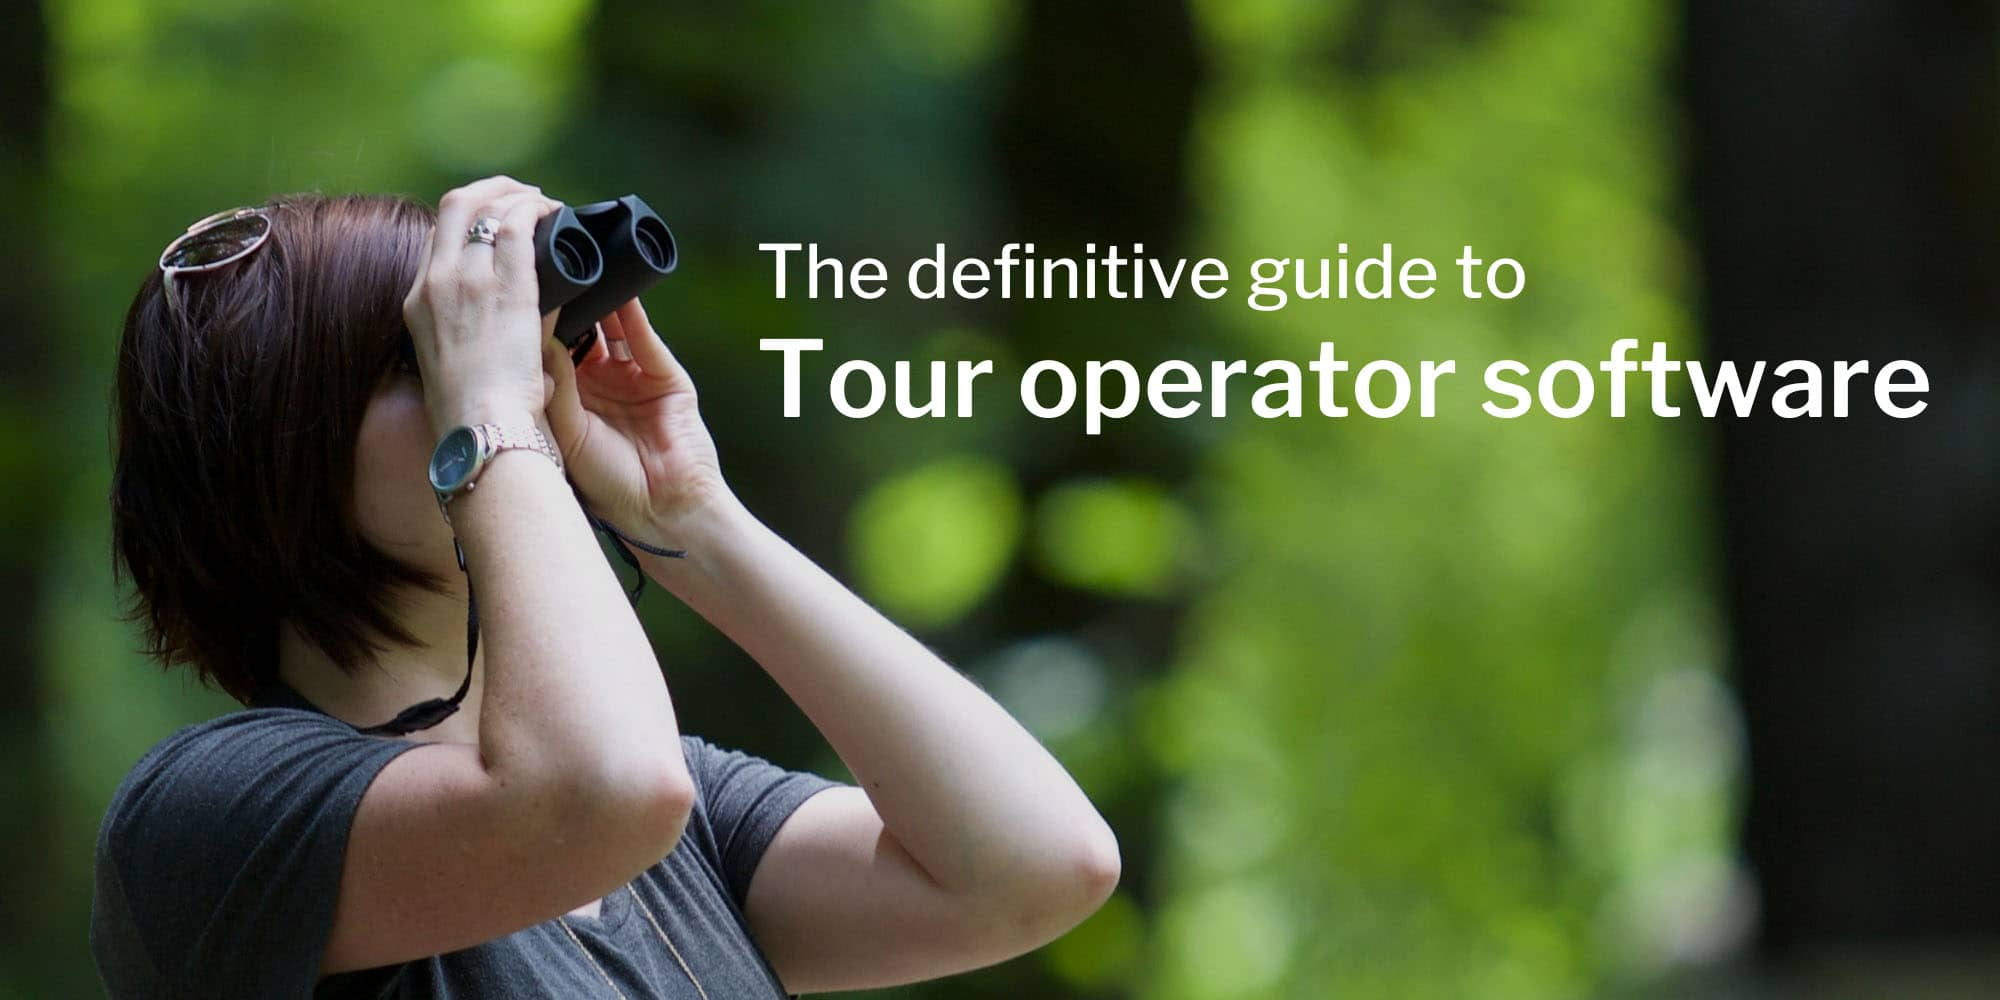 What is the best tour operator software on the market?